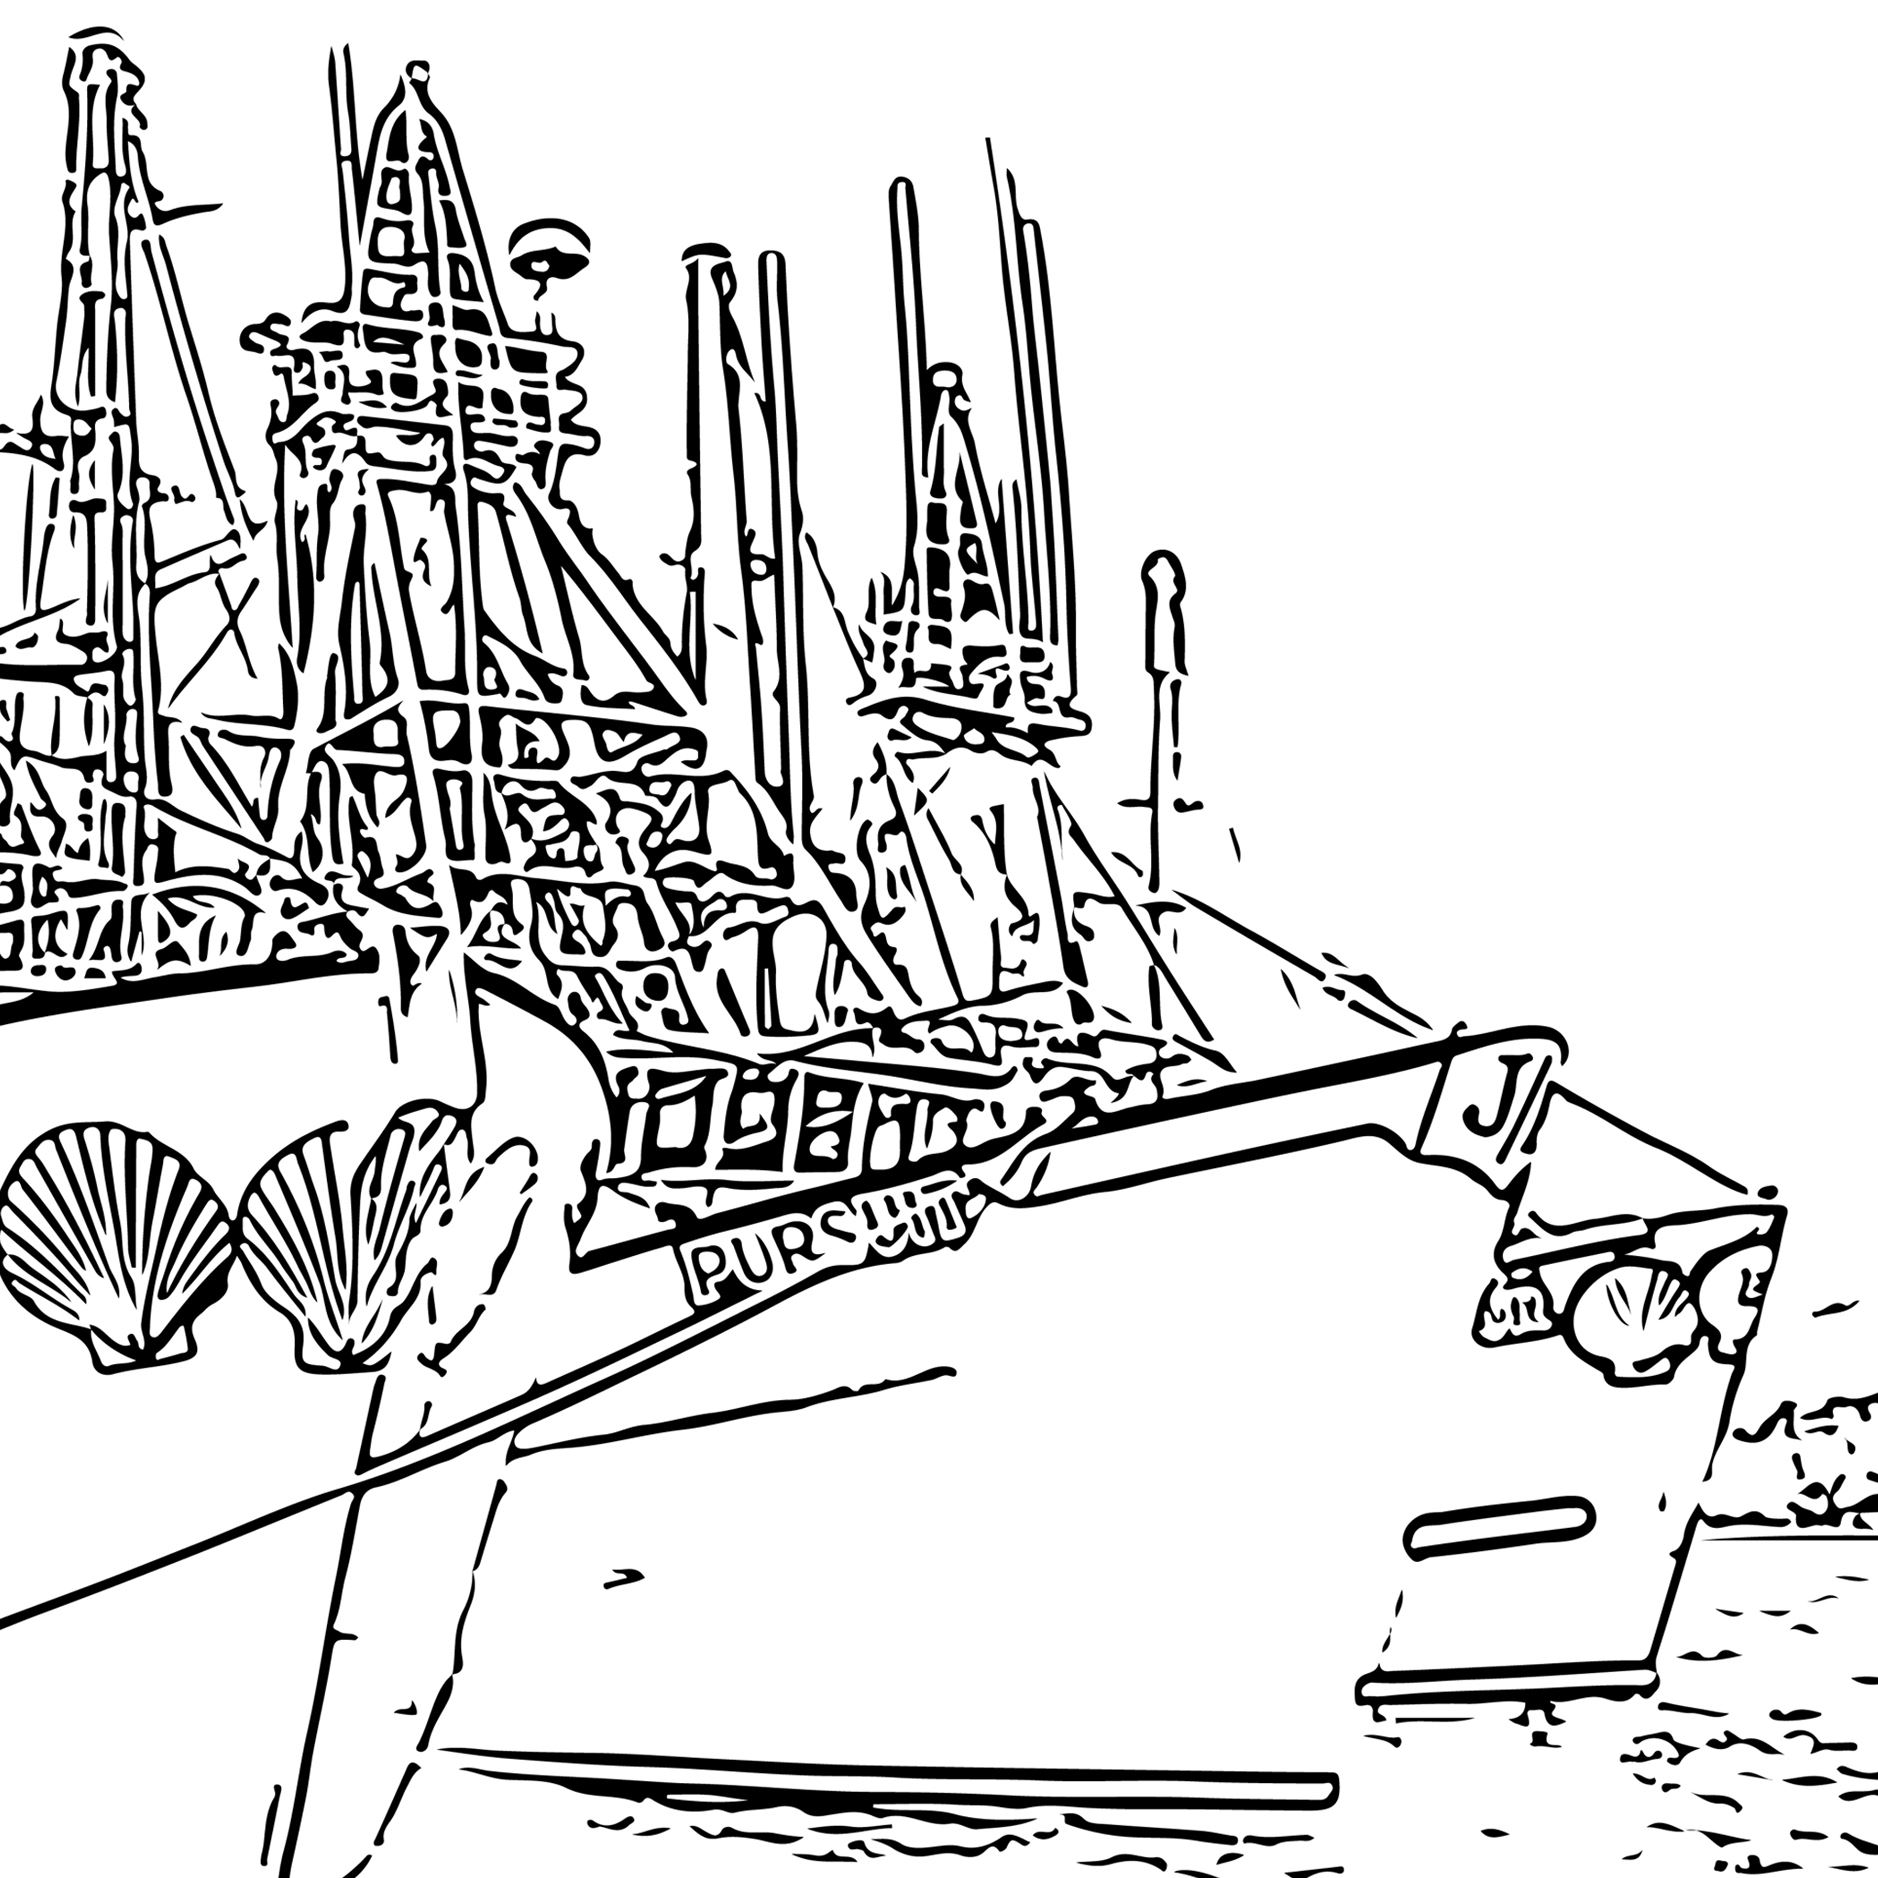 Coloring Pages Seaford Scallop Company